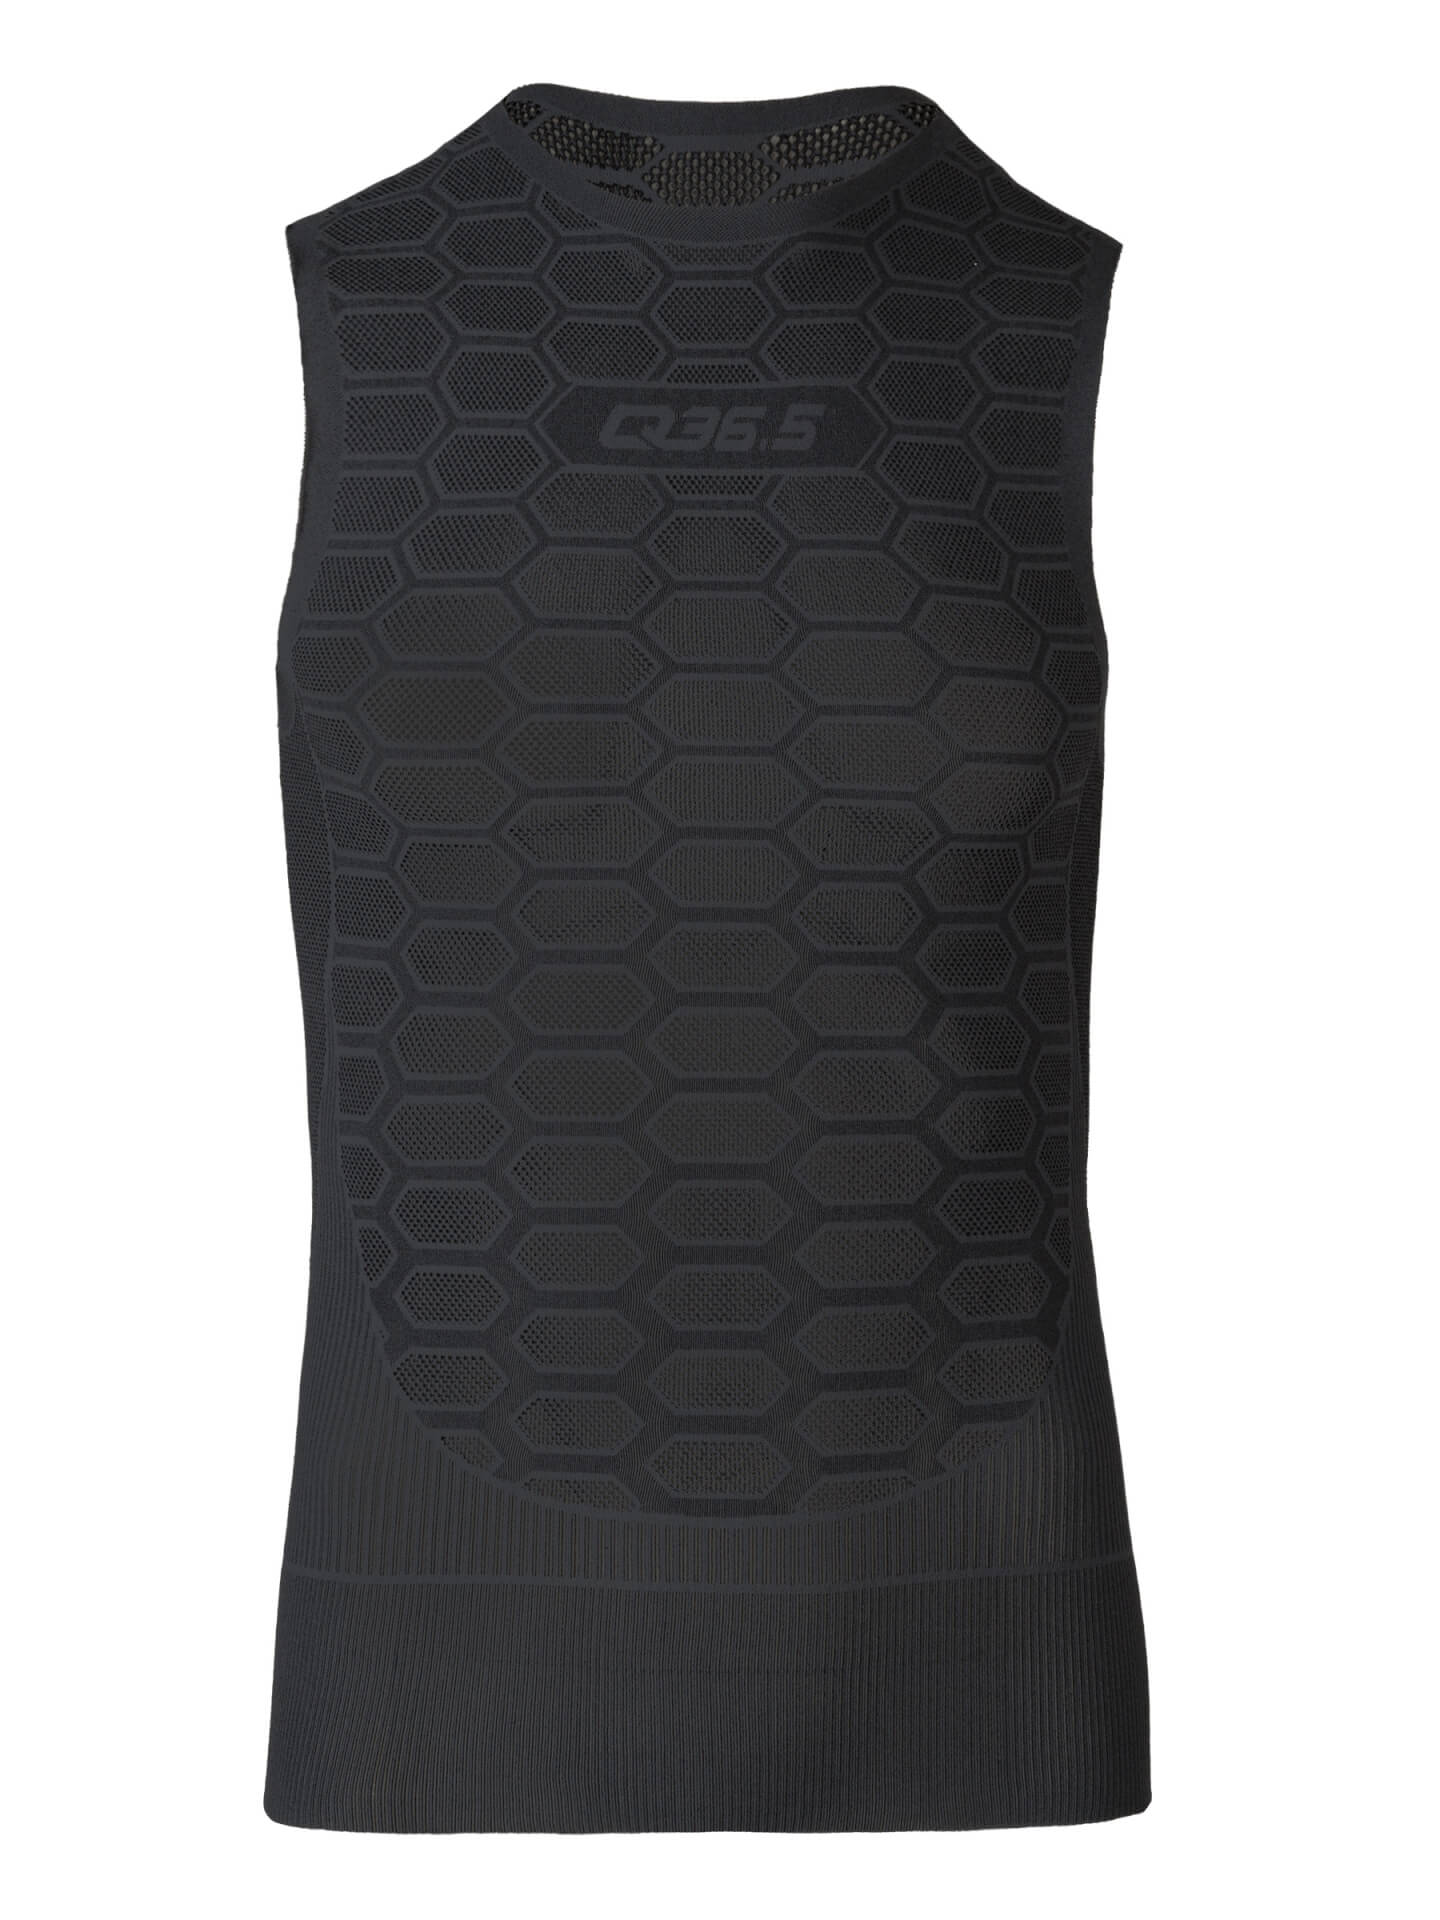 cycling base layer Q36.5